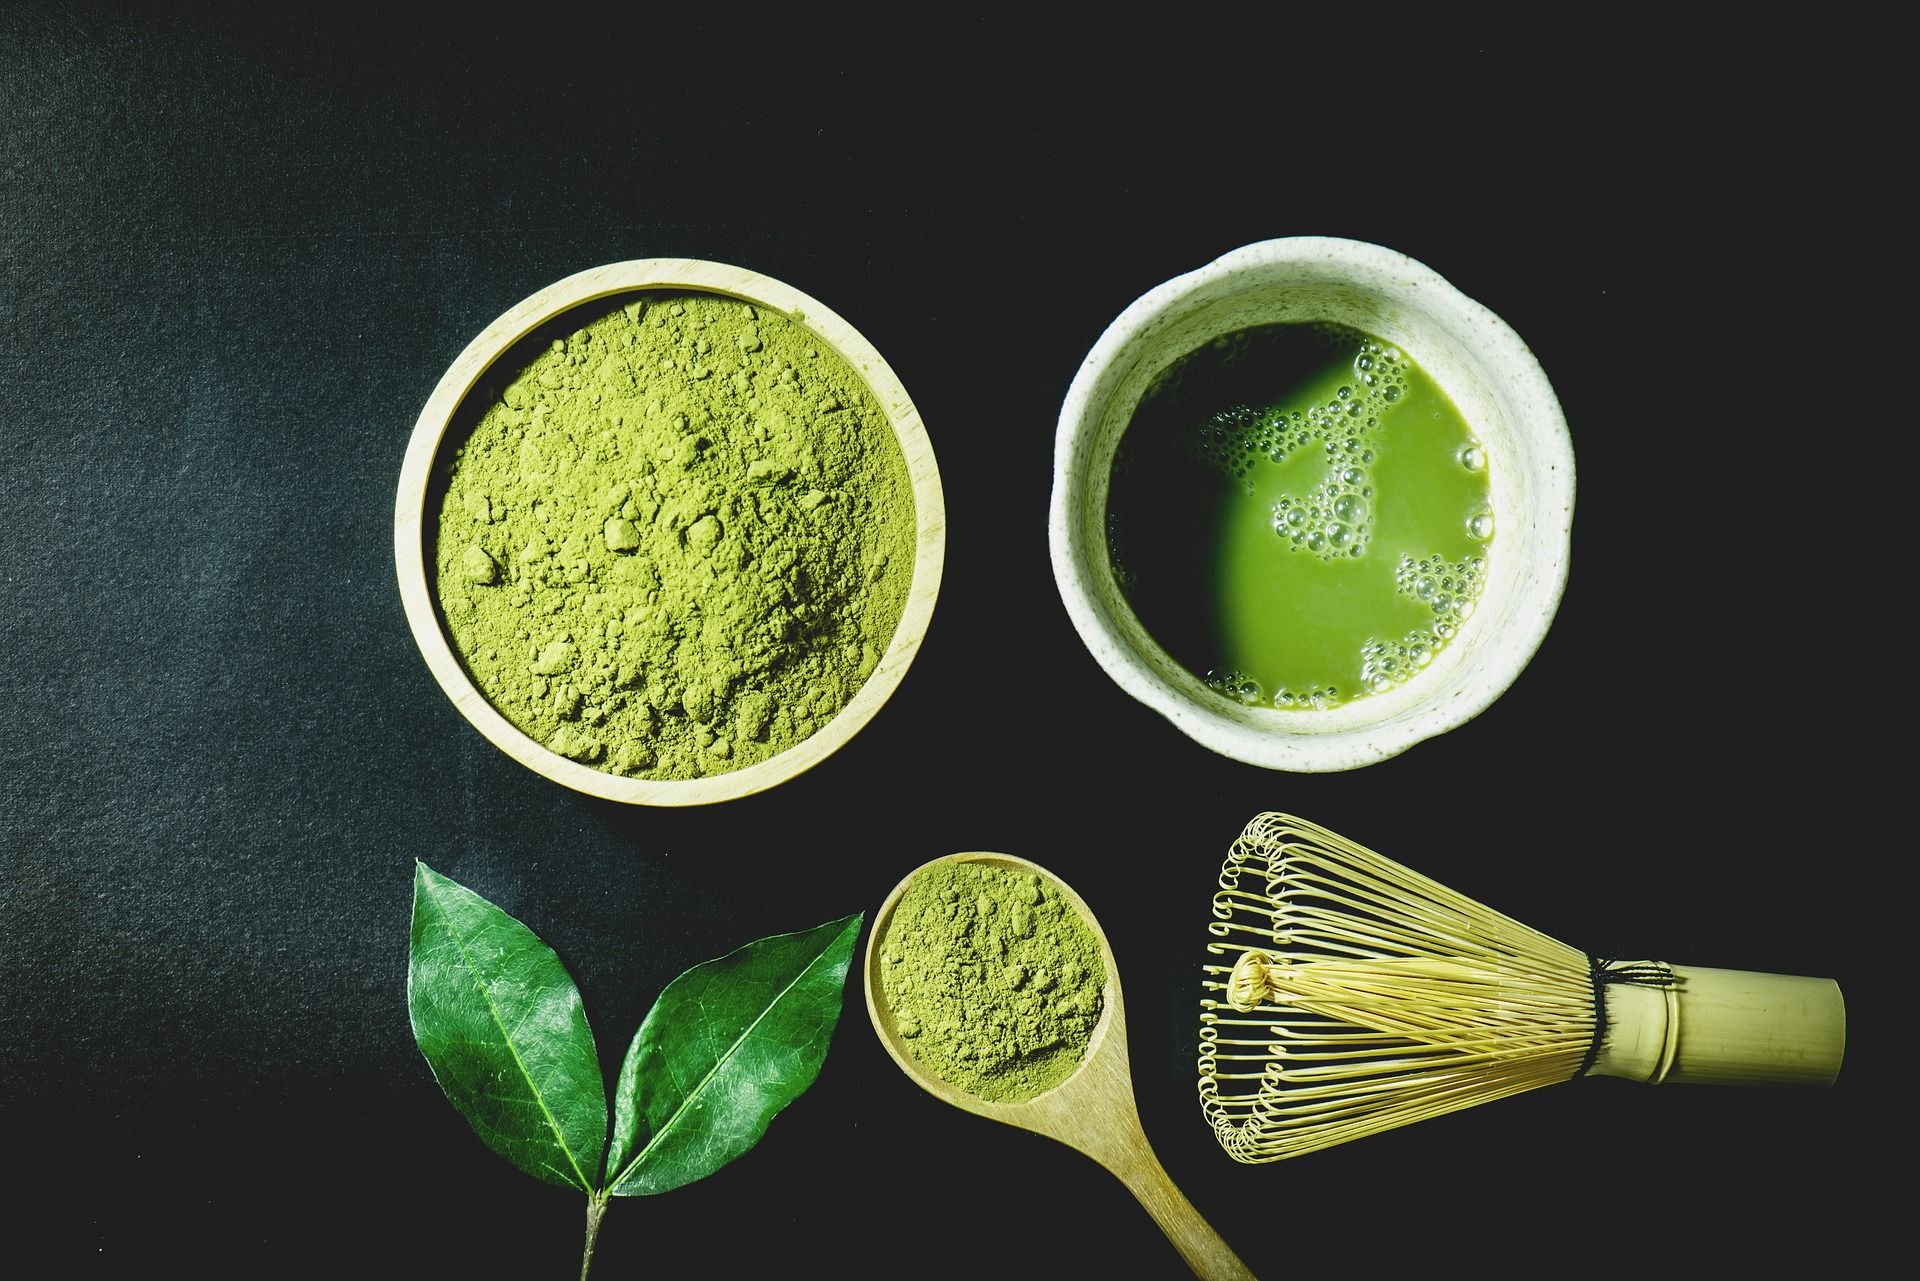 Tip Of The Week Matcha Is Tea Made From The Whole Green Tea Leaf Instead Of Part Of It Like Regular Green Te Matcha Tea Powder Matcha Tea Benefits Tea Powder